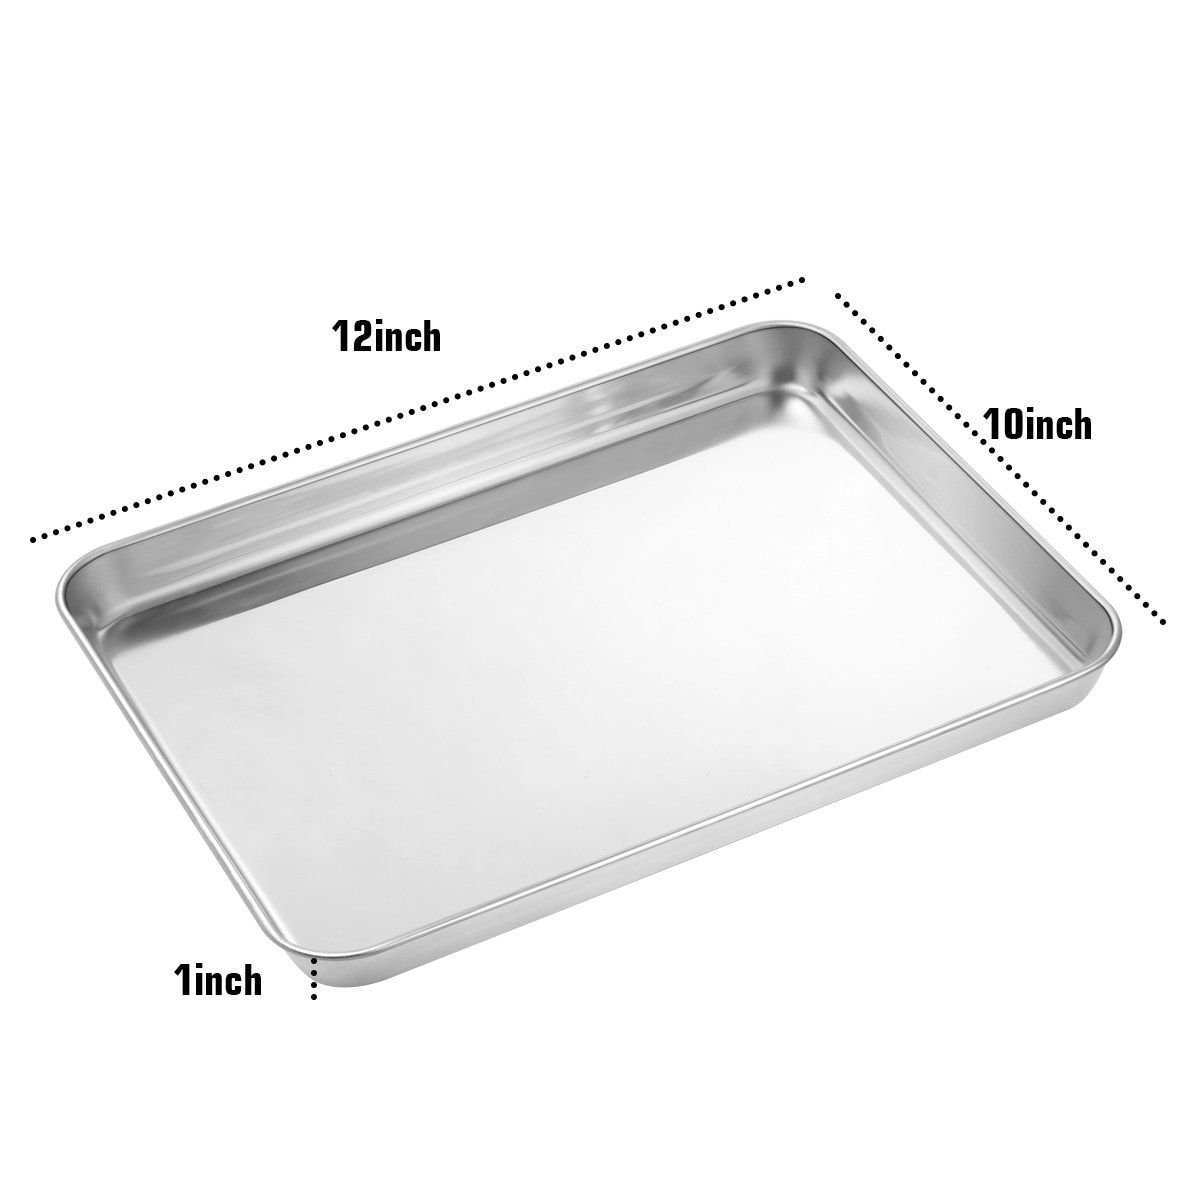 Baking Pans Set Of 2 Footek Baking Sheets Stainless Steel Cookie Sheets For Toaster Oven 12 25la 9 65wa 1h Inch Healt Baking Pans Set Baking Sheets Baking Pans